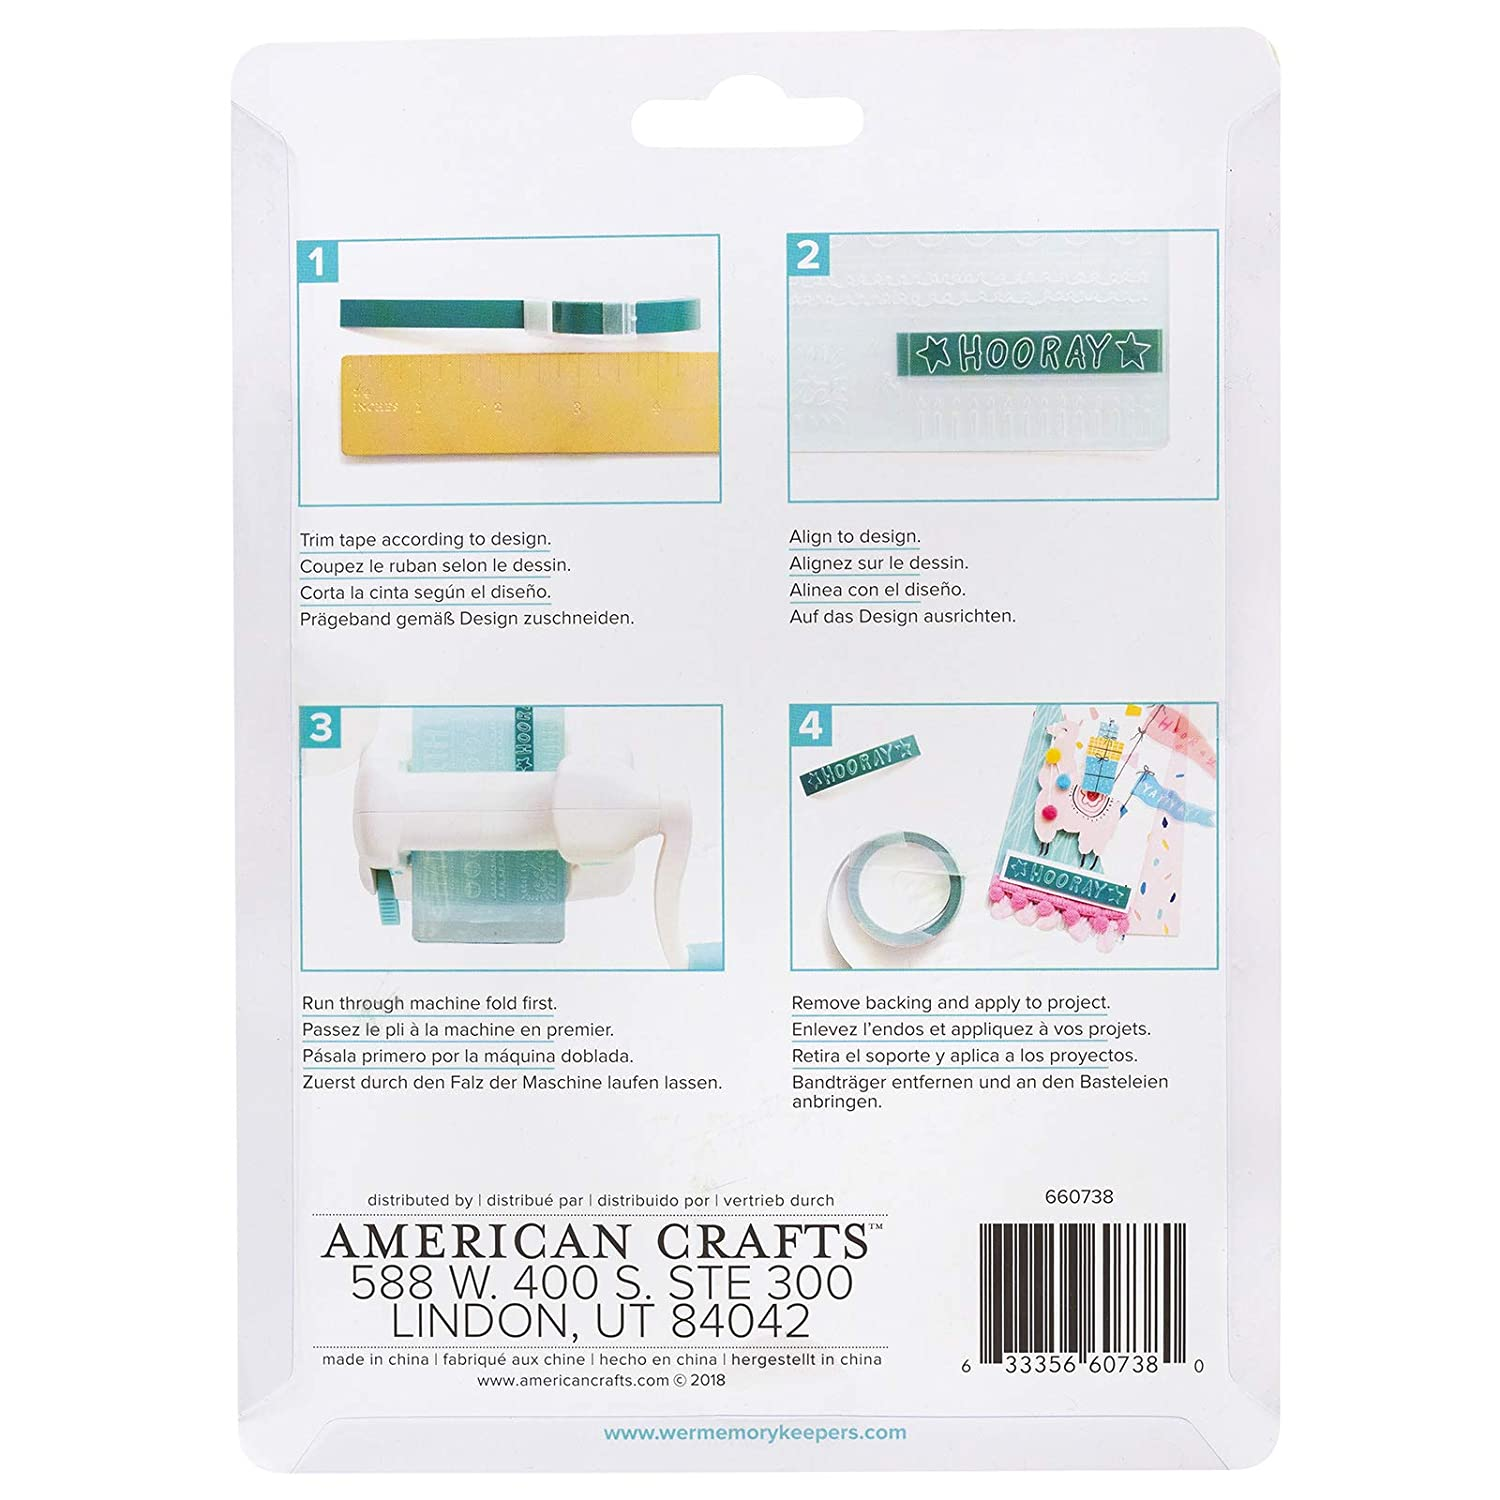 4 Piece We R Memory Keepers 660738 0633356607380 Label Embossing Folder Evolution-Everyday